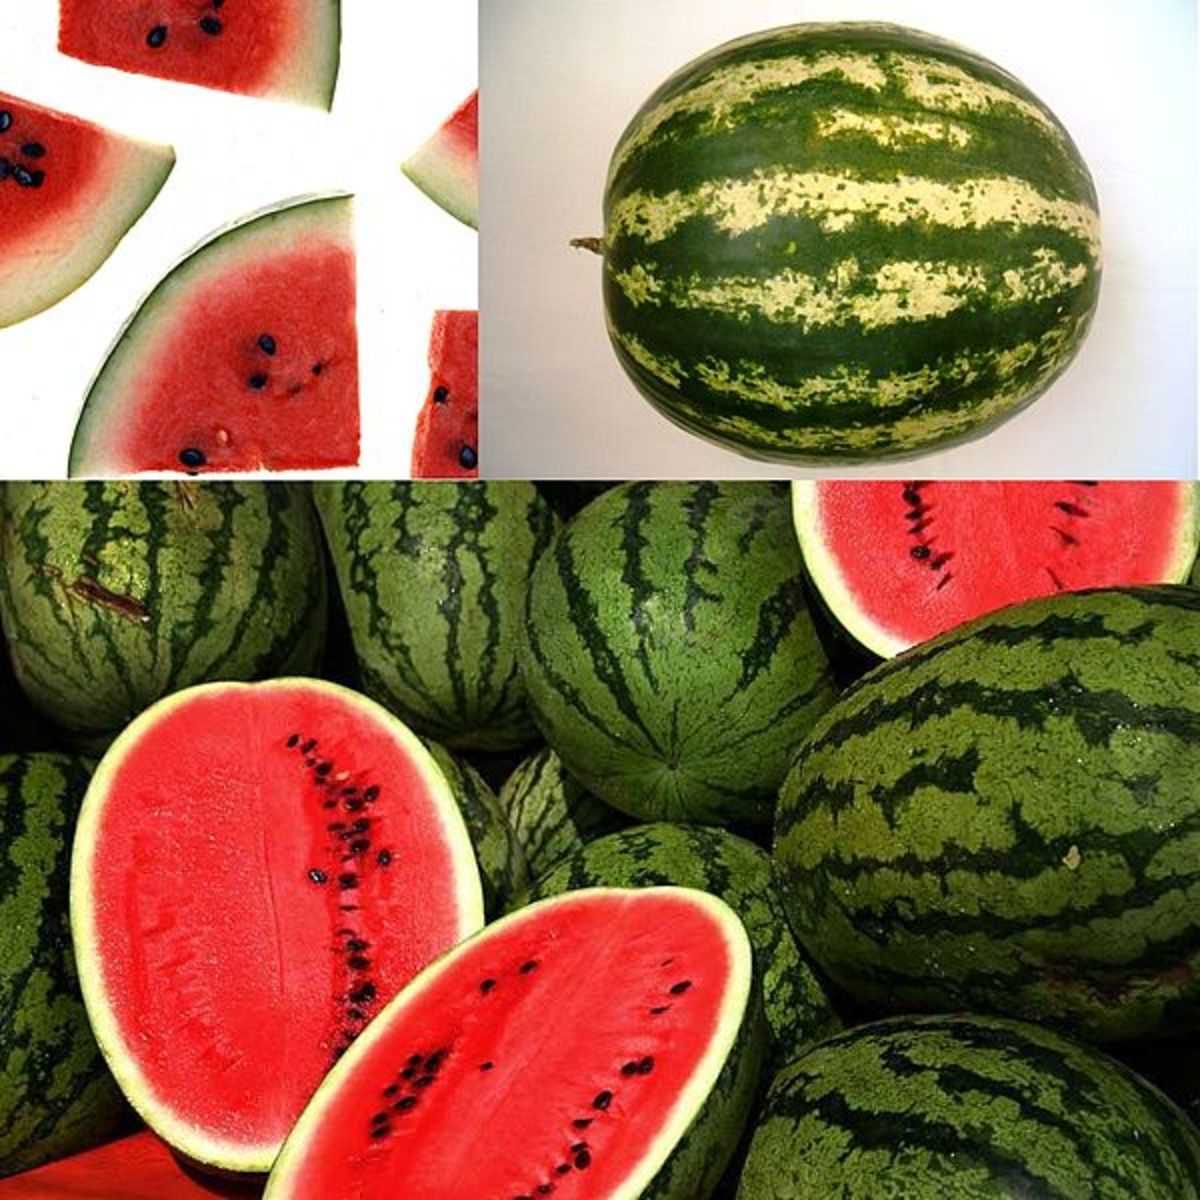 Hot summer days and sweet, juicy watermelons are a perfect match.